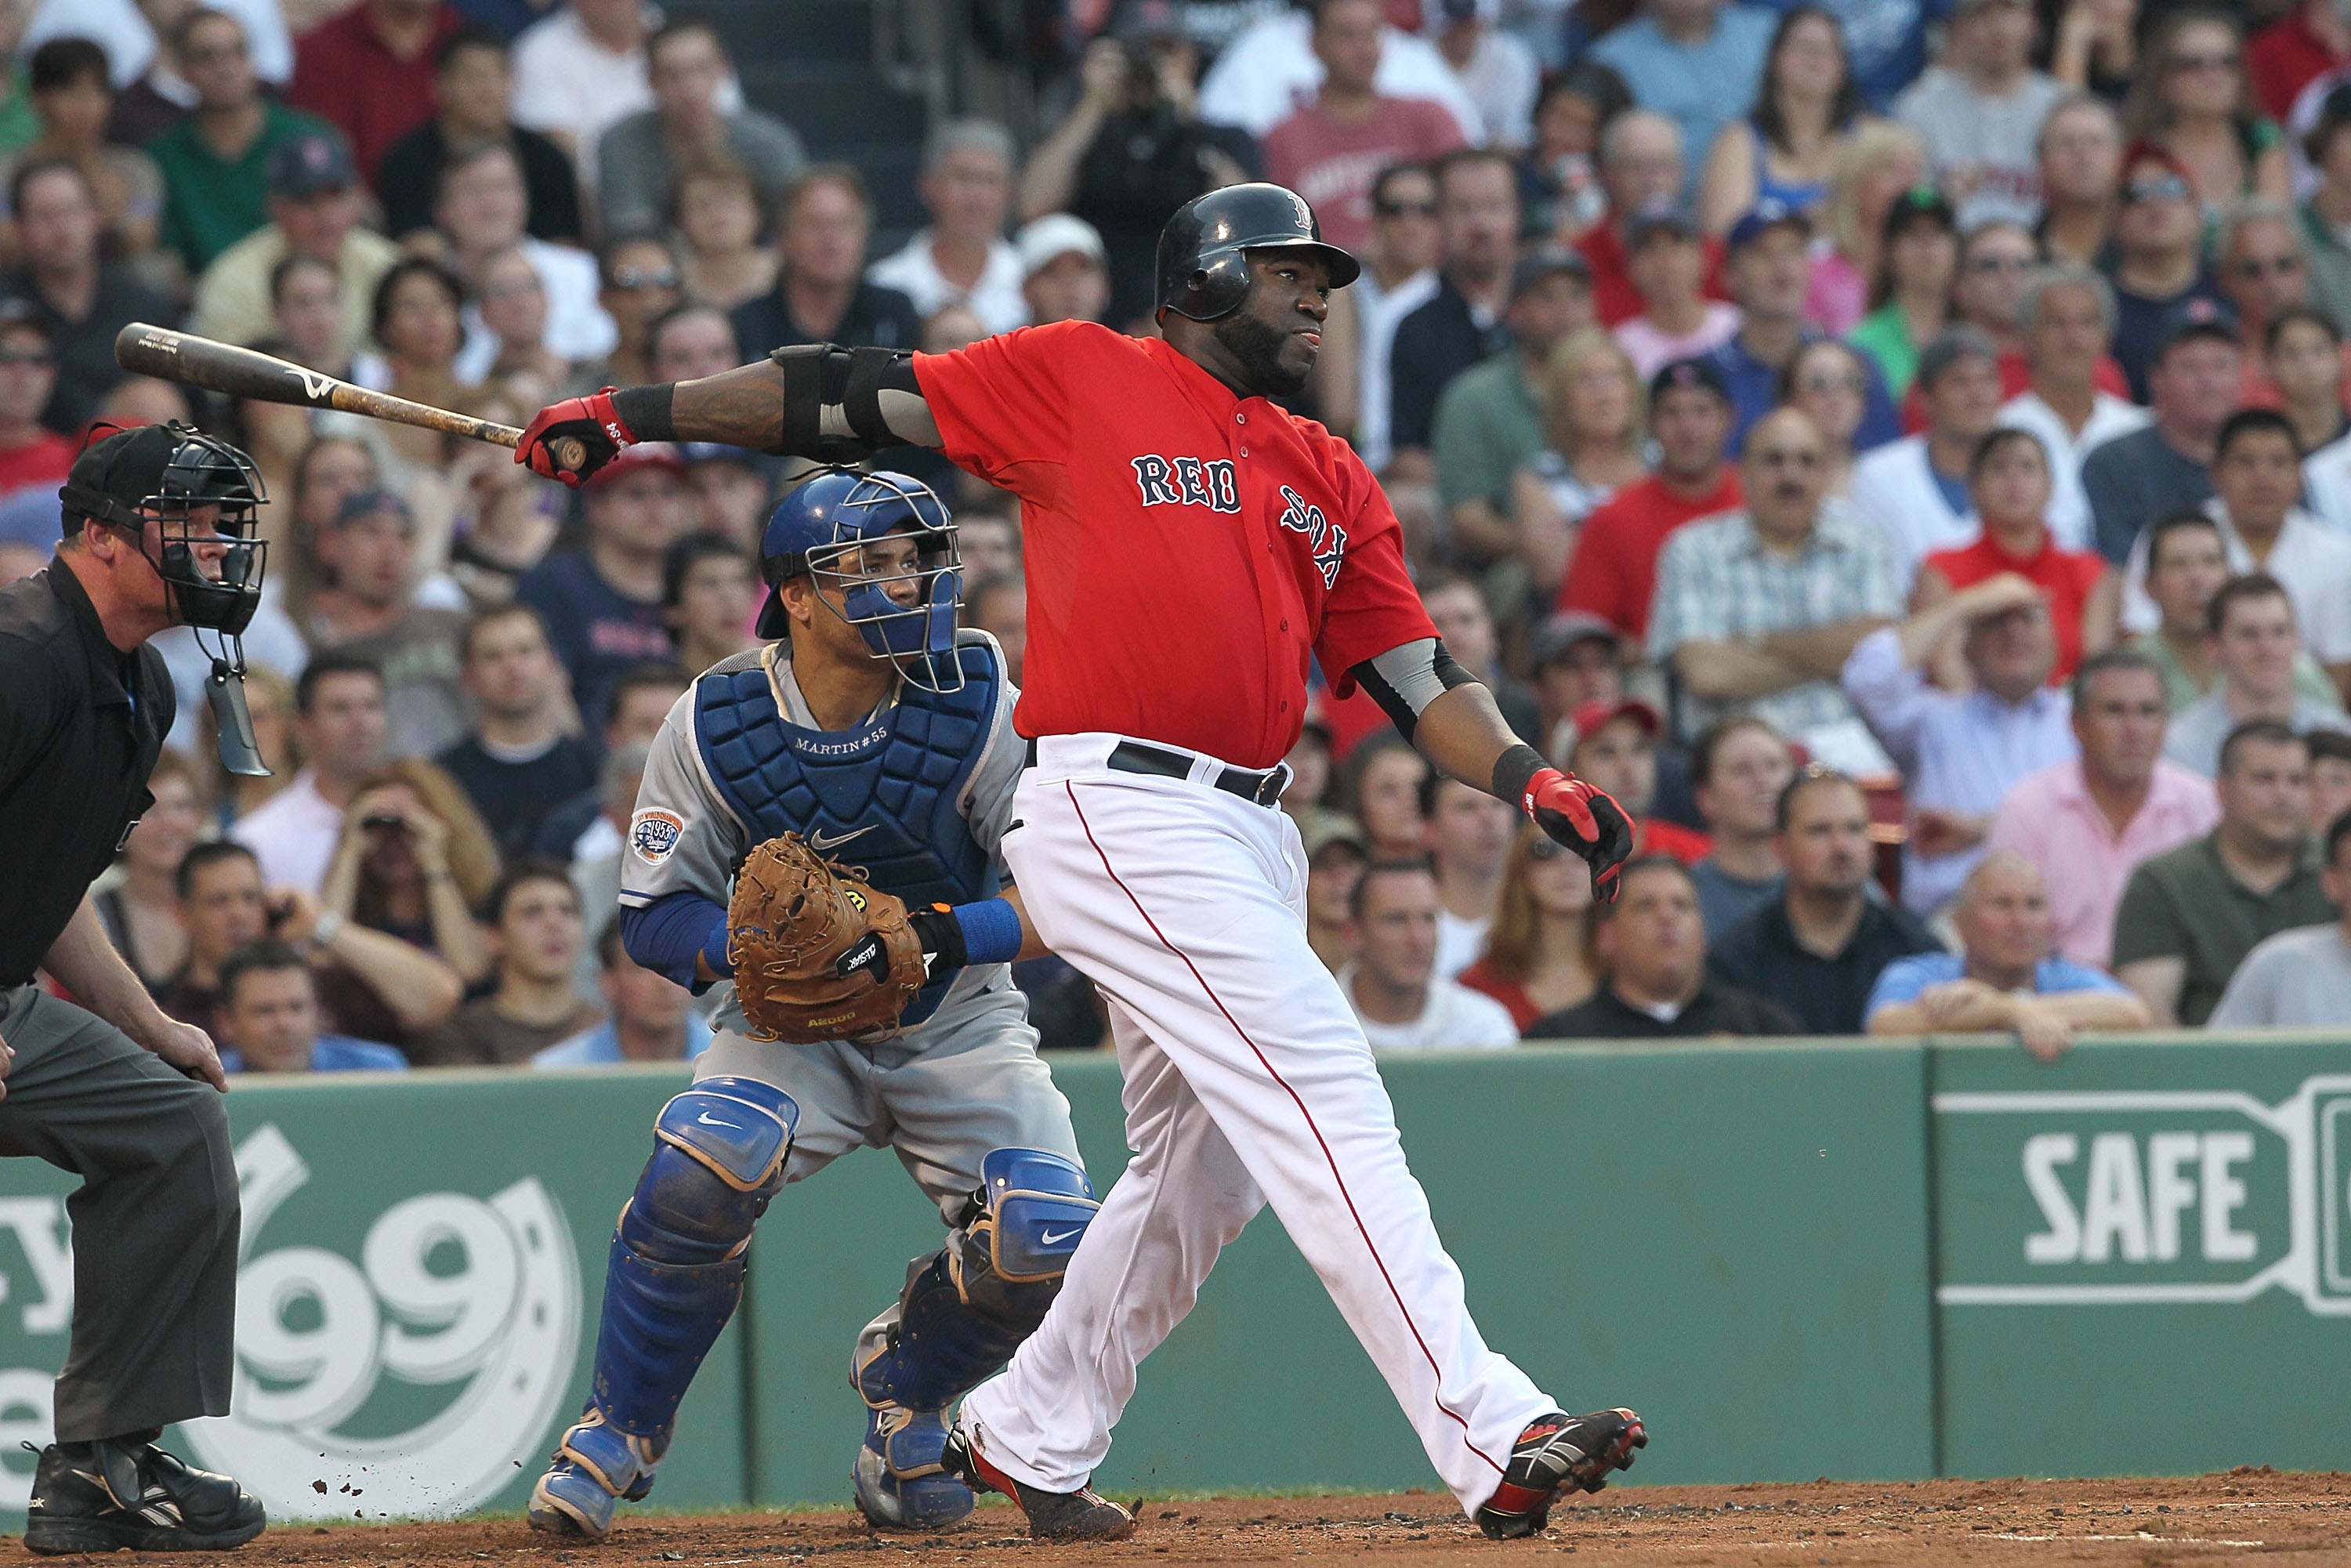 BOSTON - JUNE 18:  David Ortiz of the Boston Red Sox hits a home run against the Los Angeles Dodgers at Fenway Park on June 18, 2010 in Boston, Massachusetts. (Photo by Jim Rogash/Getty Images)